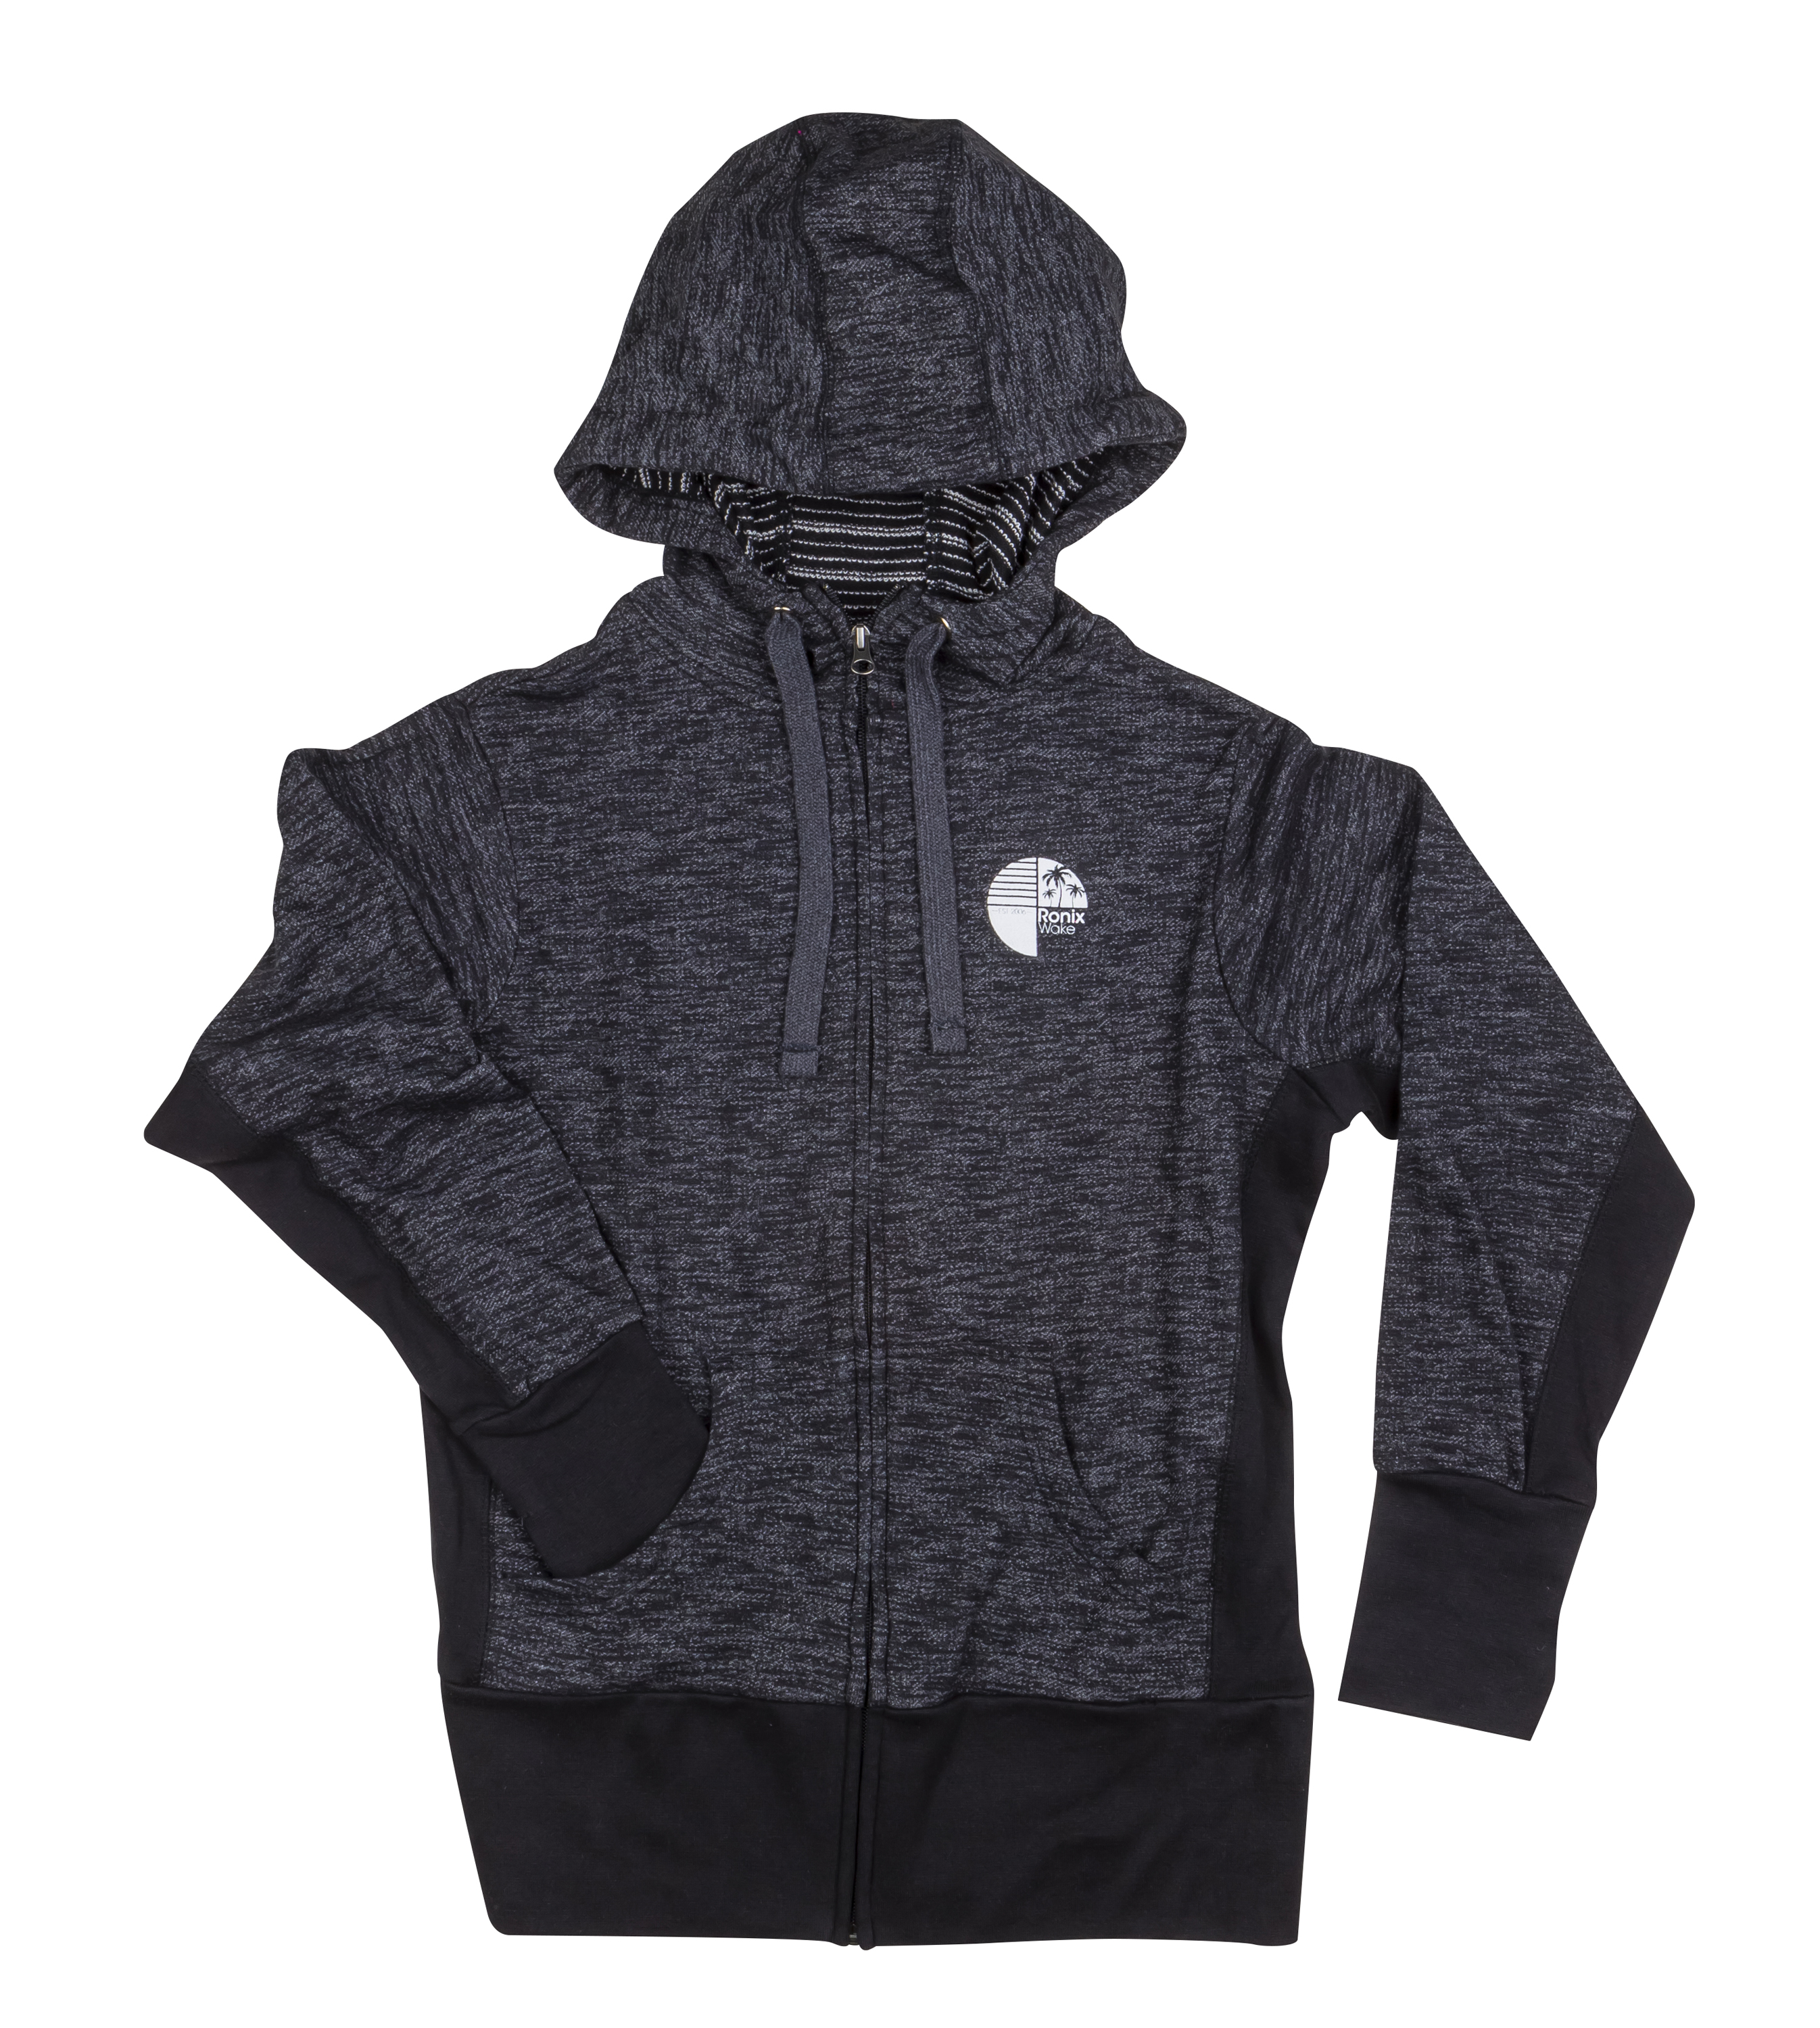 WOMEN'S TROPICAL ZIP-UP HOODIE RONIX 2017